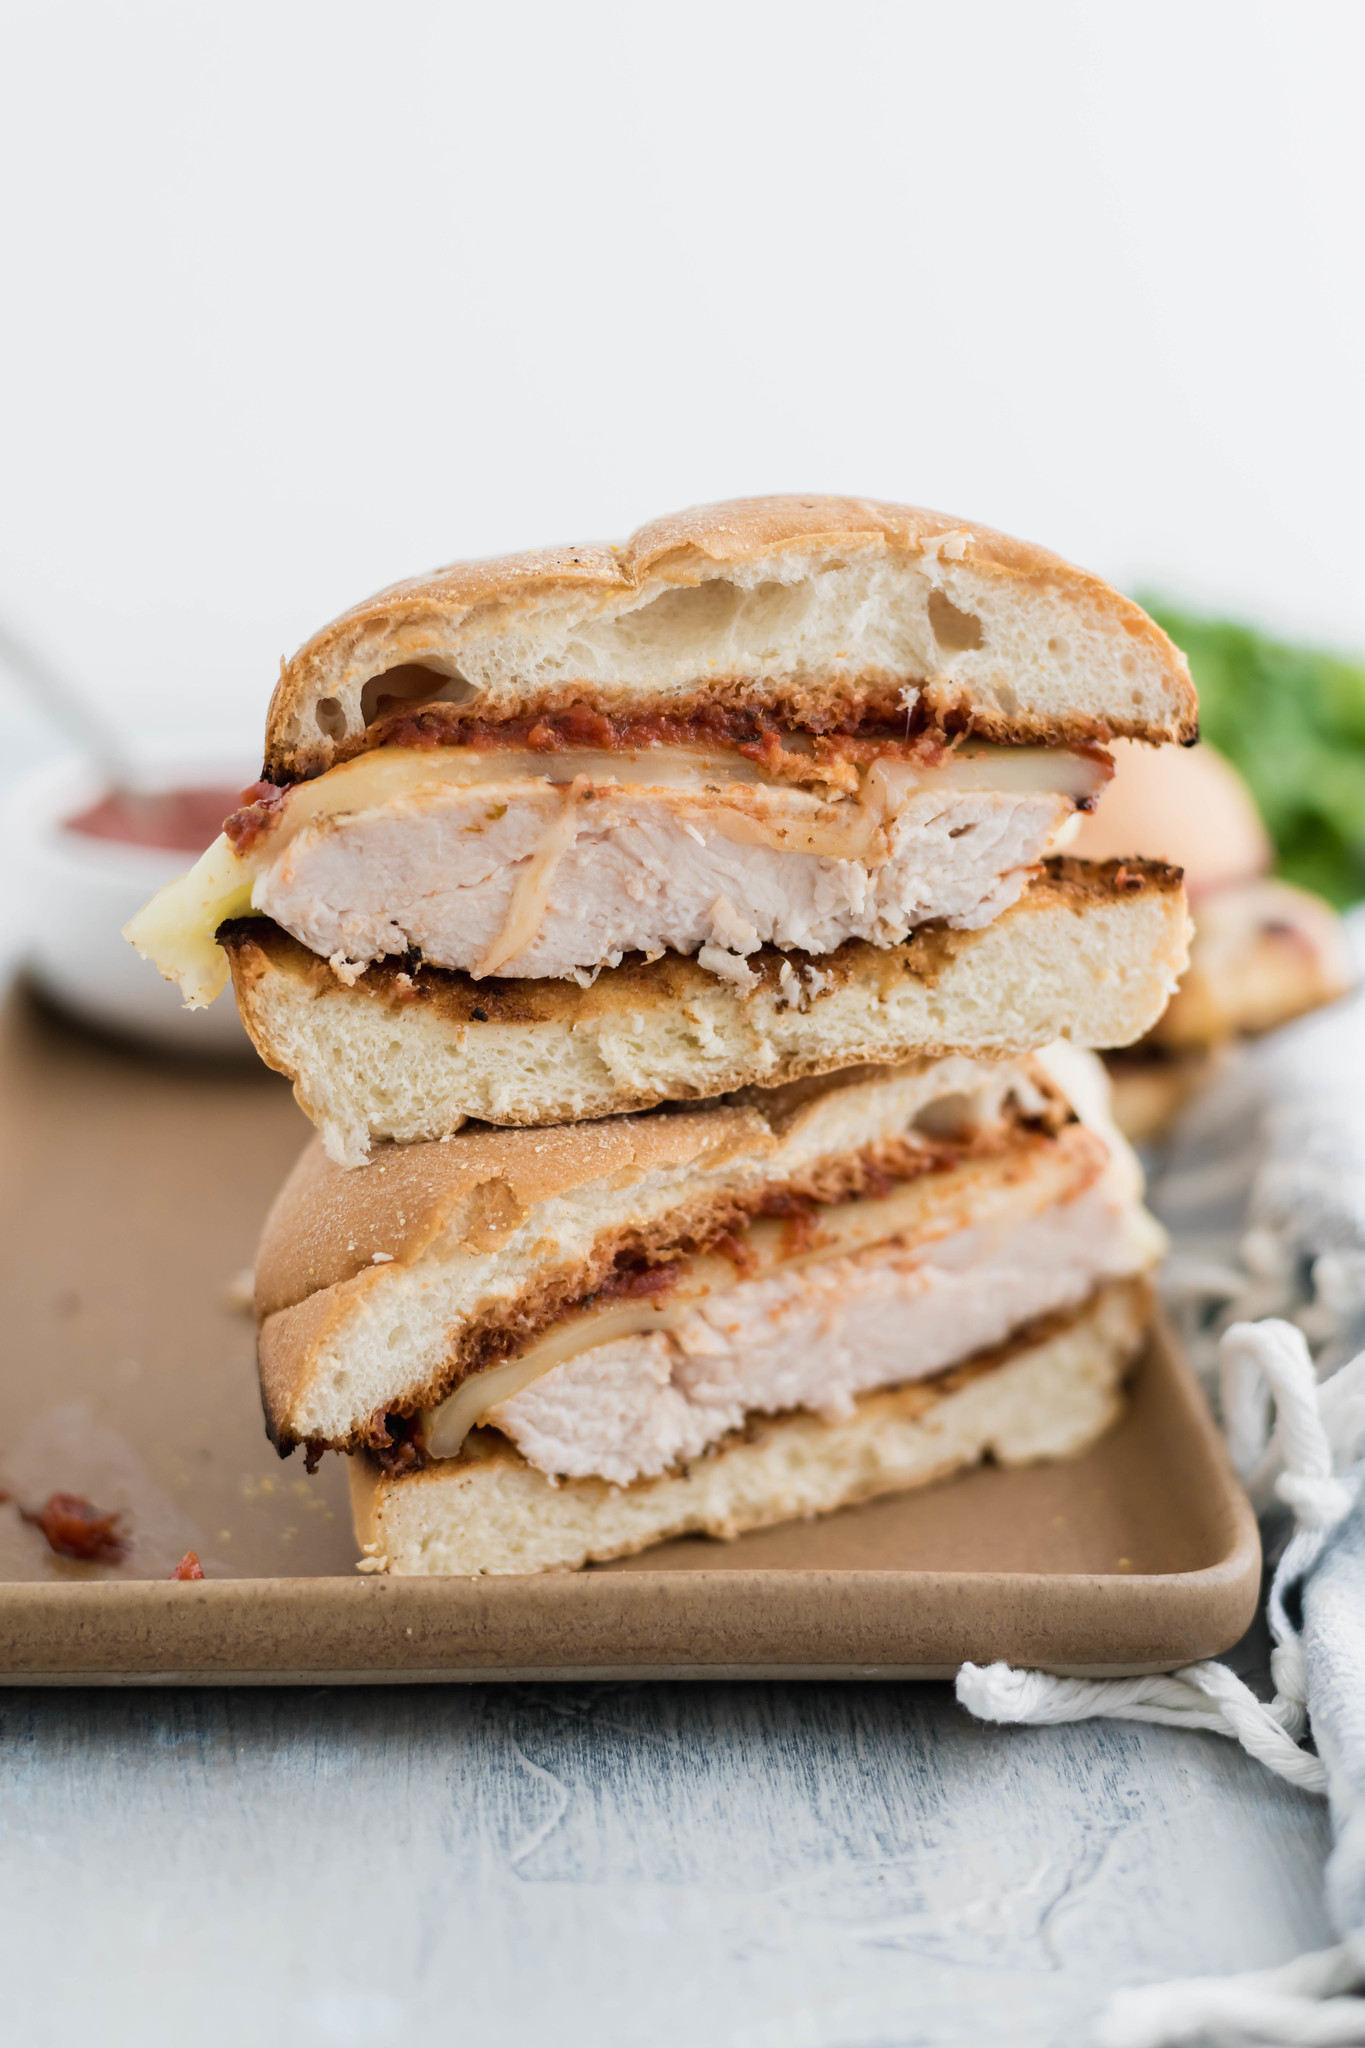 Easy, delicious and perfect for summer, this Grilled Chicken Parmesan Sandwich will quickly become a weeknight favorite. Grab 5 simple ingredients and get dinner on the table fast.